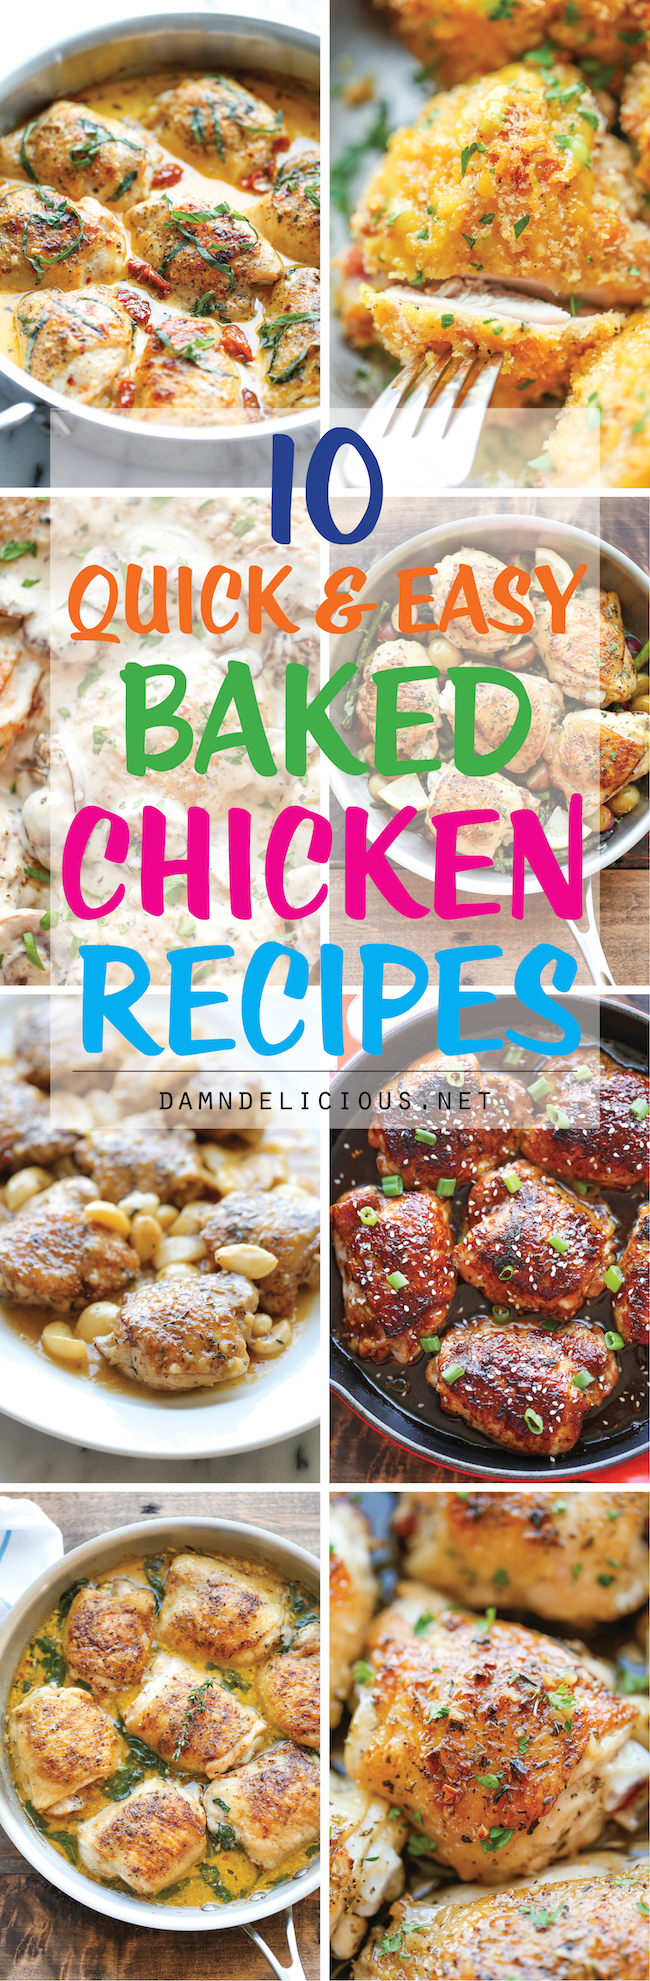 Easy and healthy baked chicken recipes